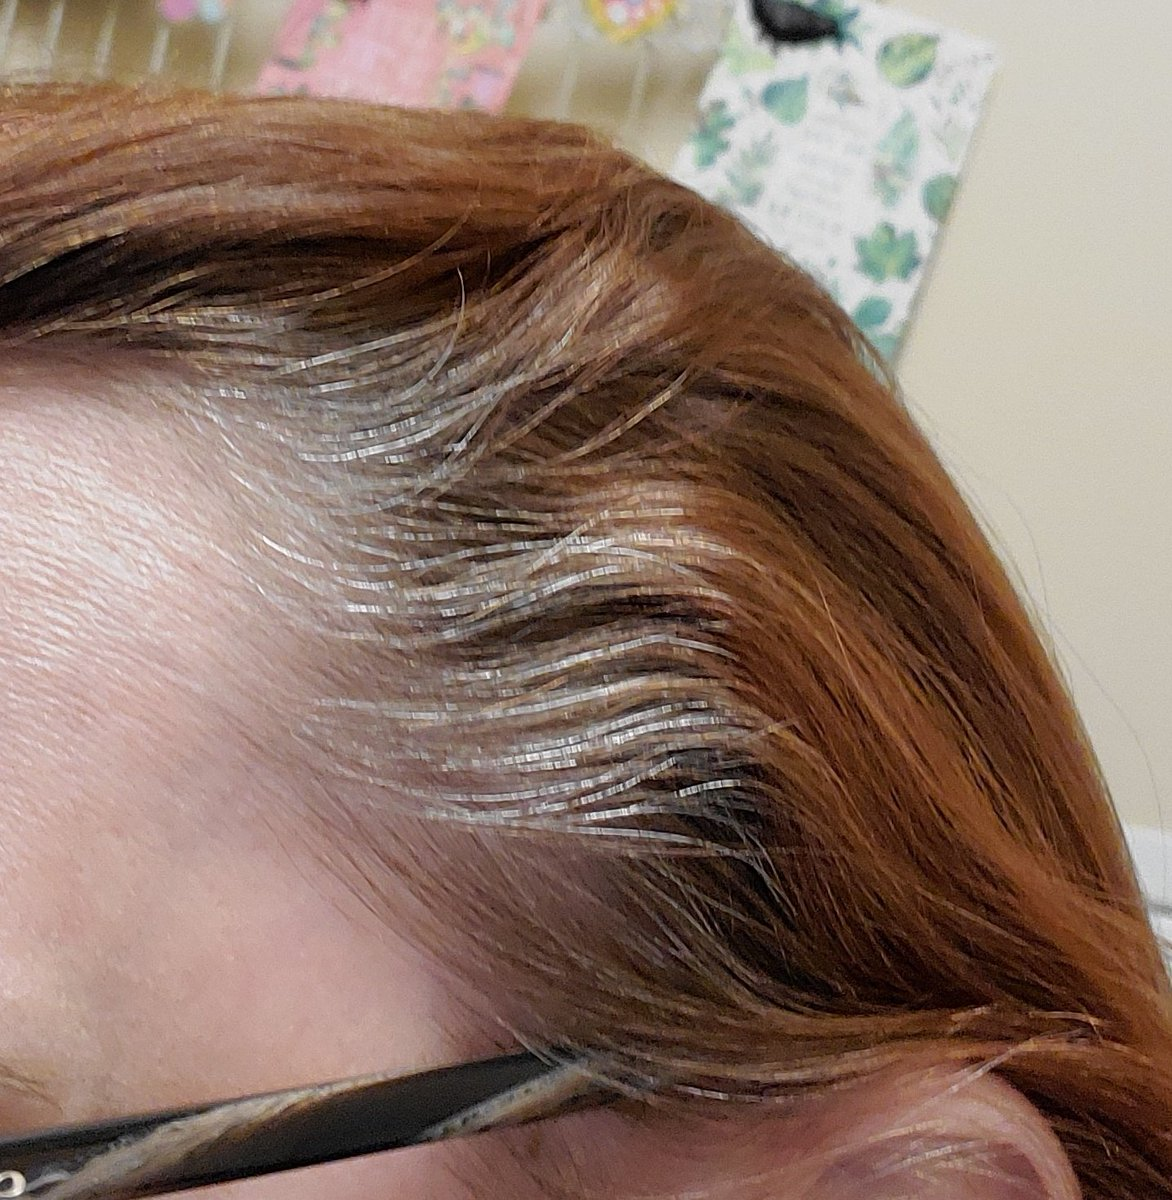 I have decided not to color my hair anymore. The chemicals aren't just bad for me, they are bad for the environment. With that said, I have grey hair! I earned every single strand! #grey Guess 3 am a grey panther now??? pic.twitter.com/wp1v4elI3W